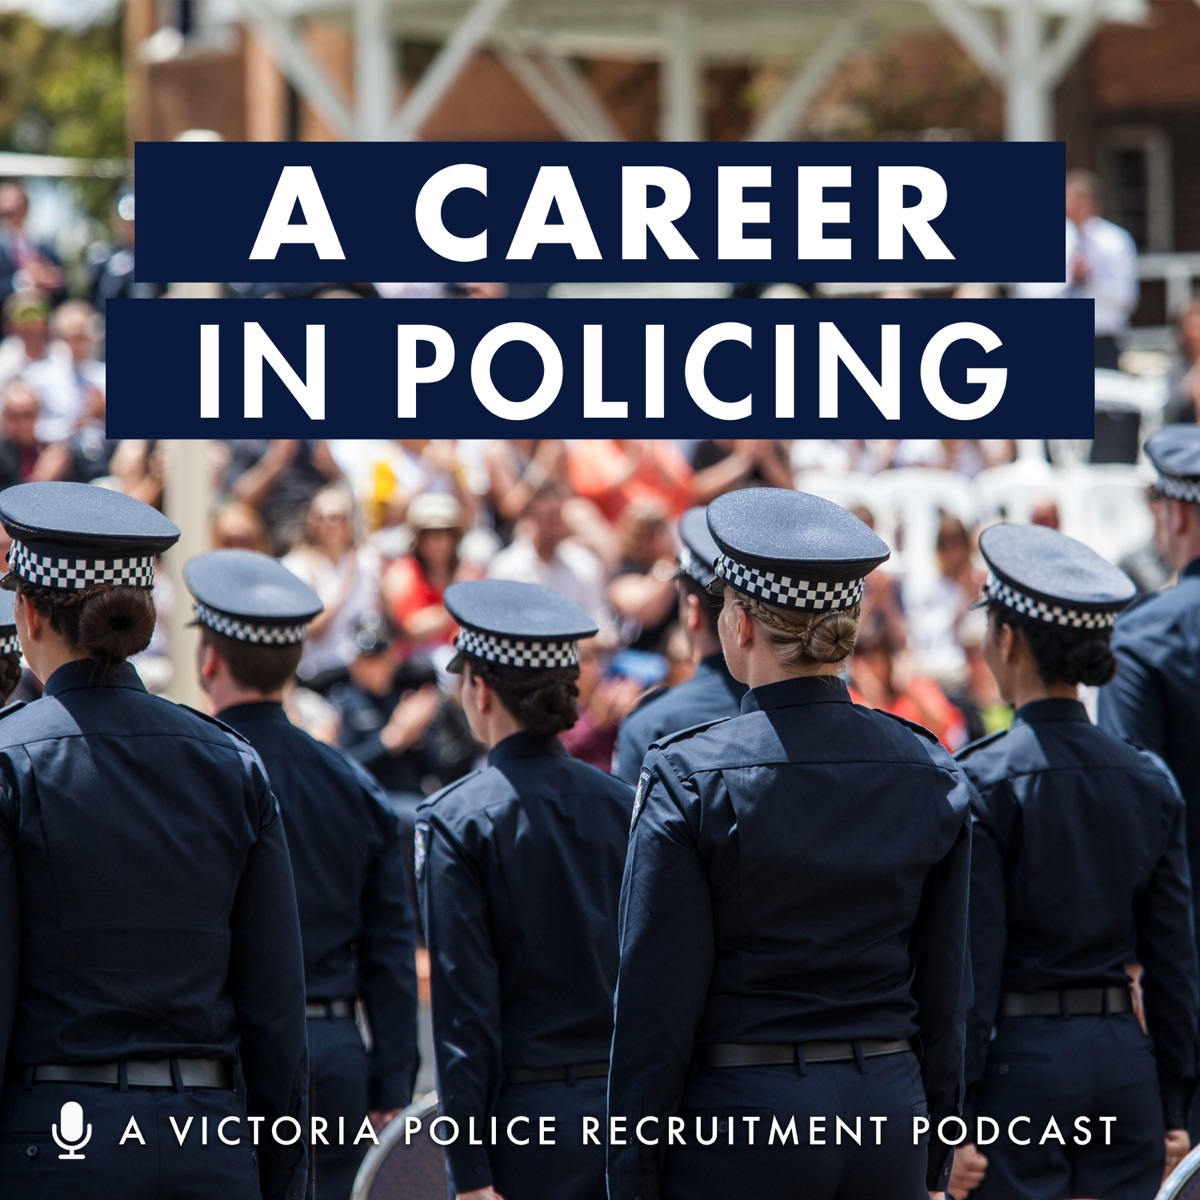 A Career in Policing